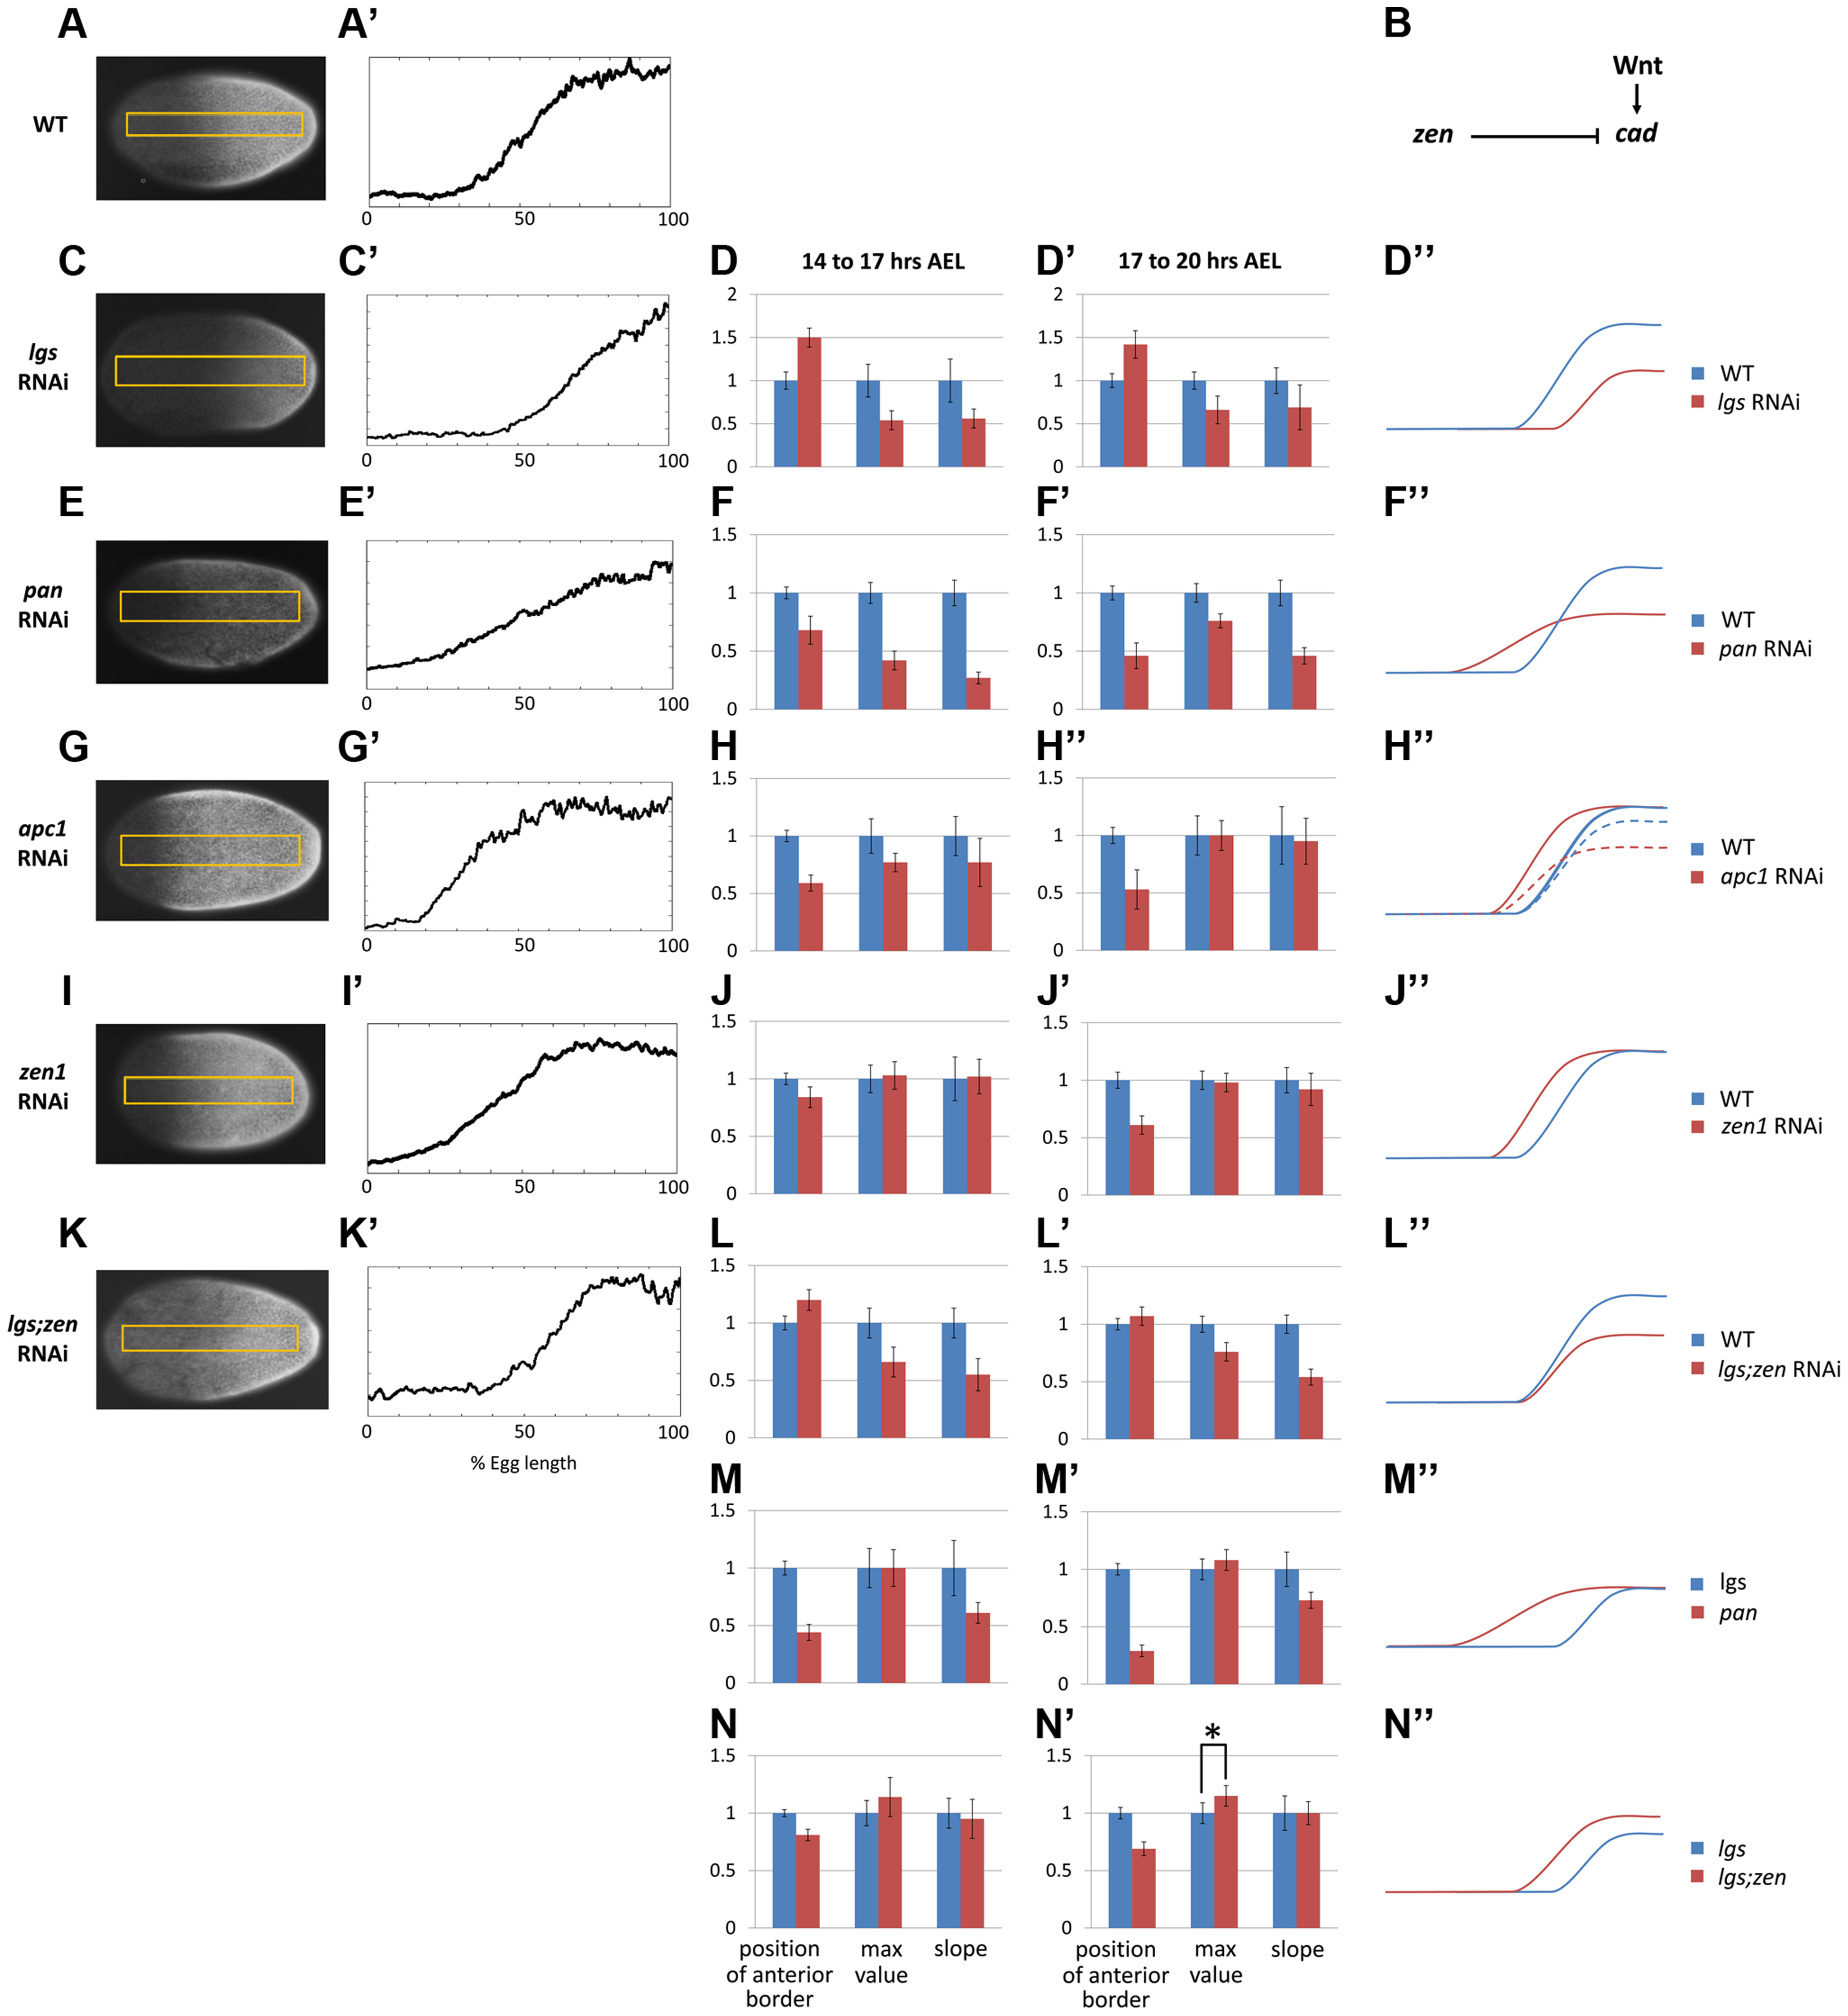 Characterization of <i>Tc-cad</i> gradient in WT and RNAi knockdowns.